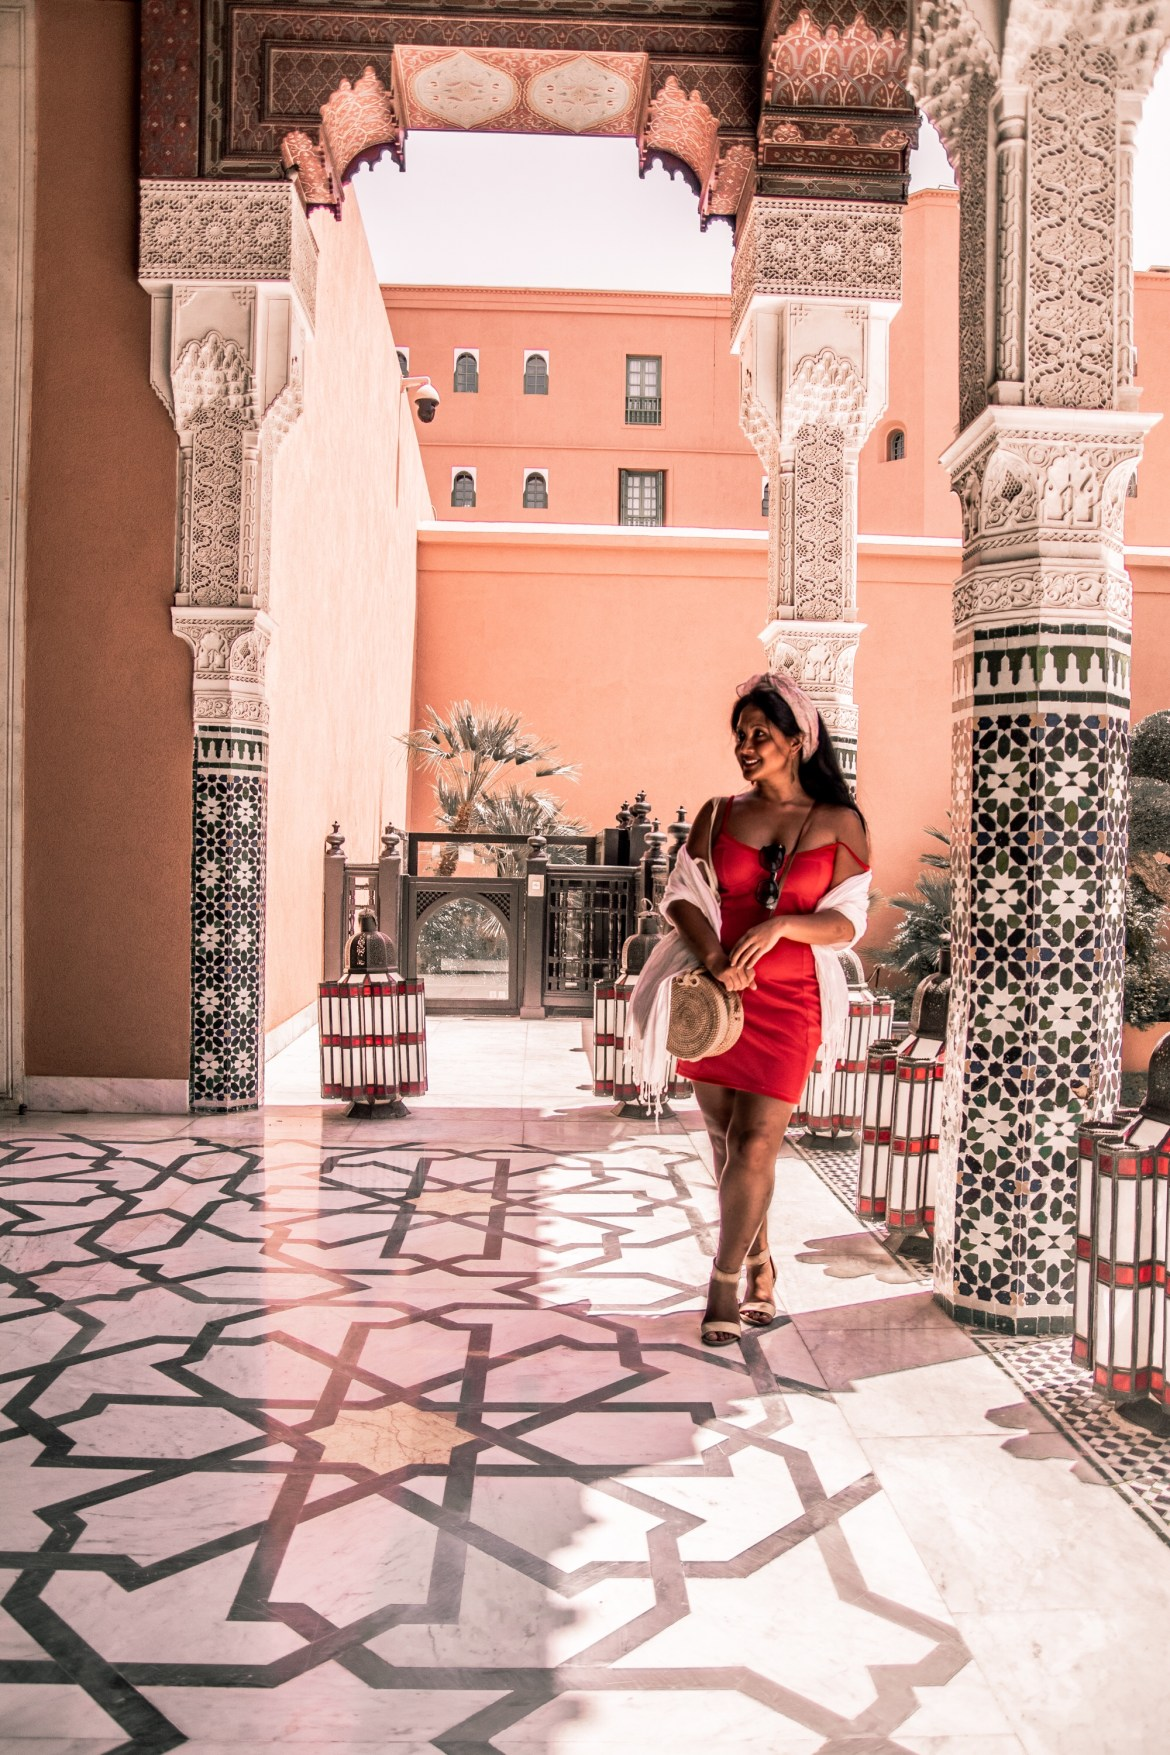 What Color Shoes To Wear With A Red Dress How To Wear A Summer Red Dress What To Wear In Morocco Marrakech Paris Chic Style 9